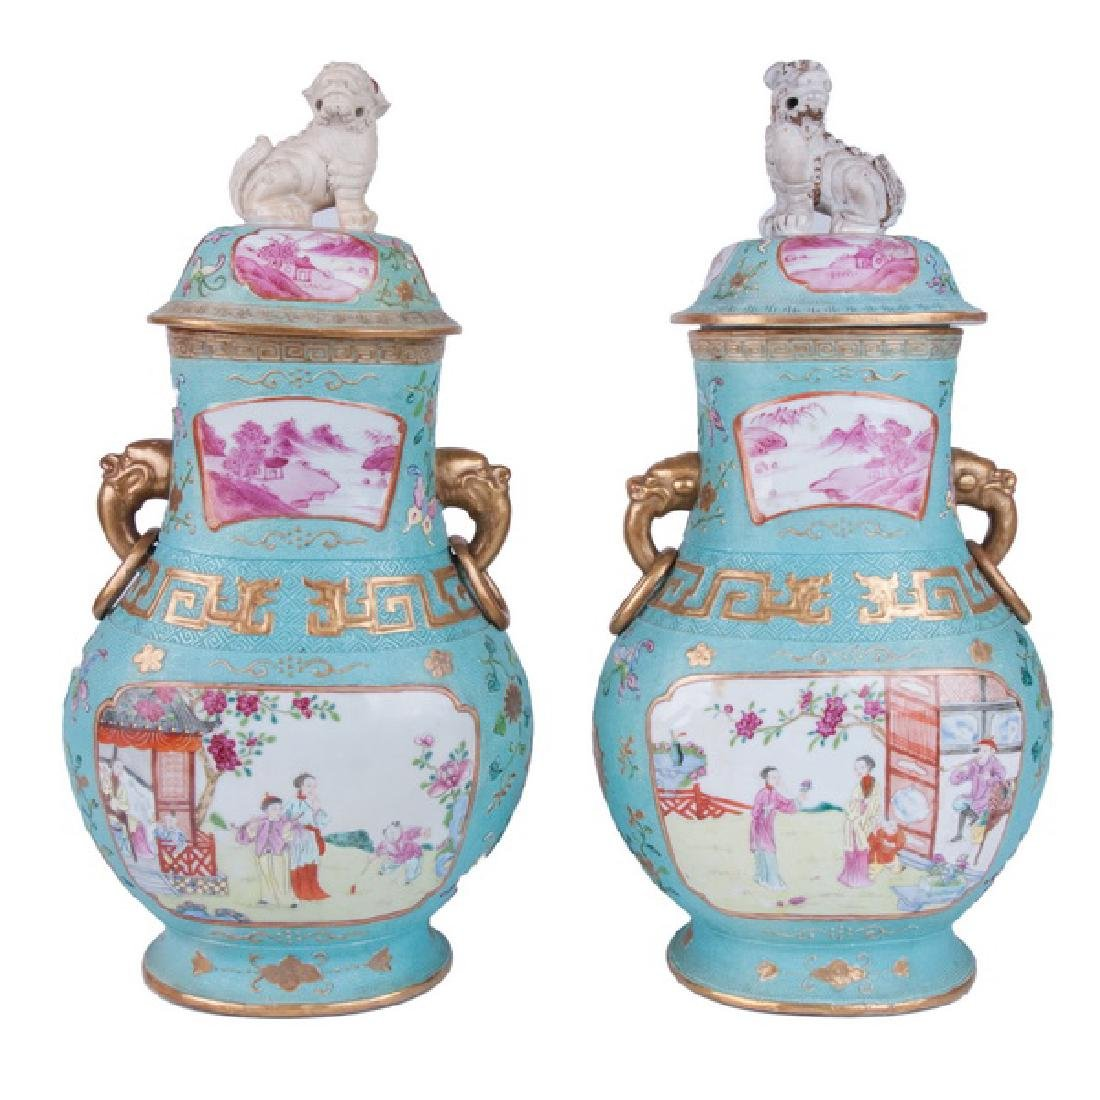 PAIR OF CHINESE EXPORT PORCELAIN COVERED JARS